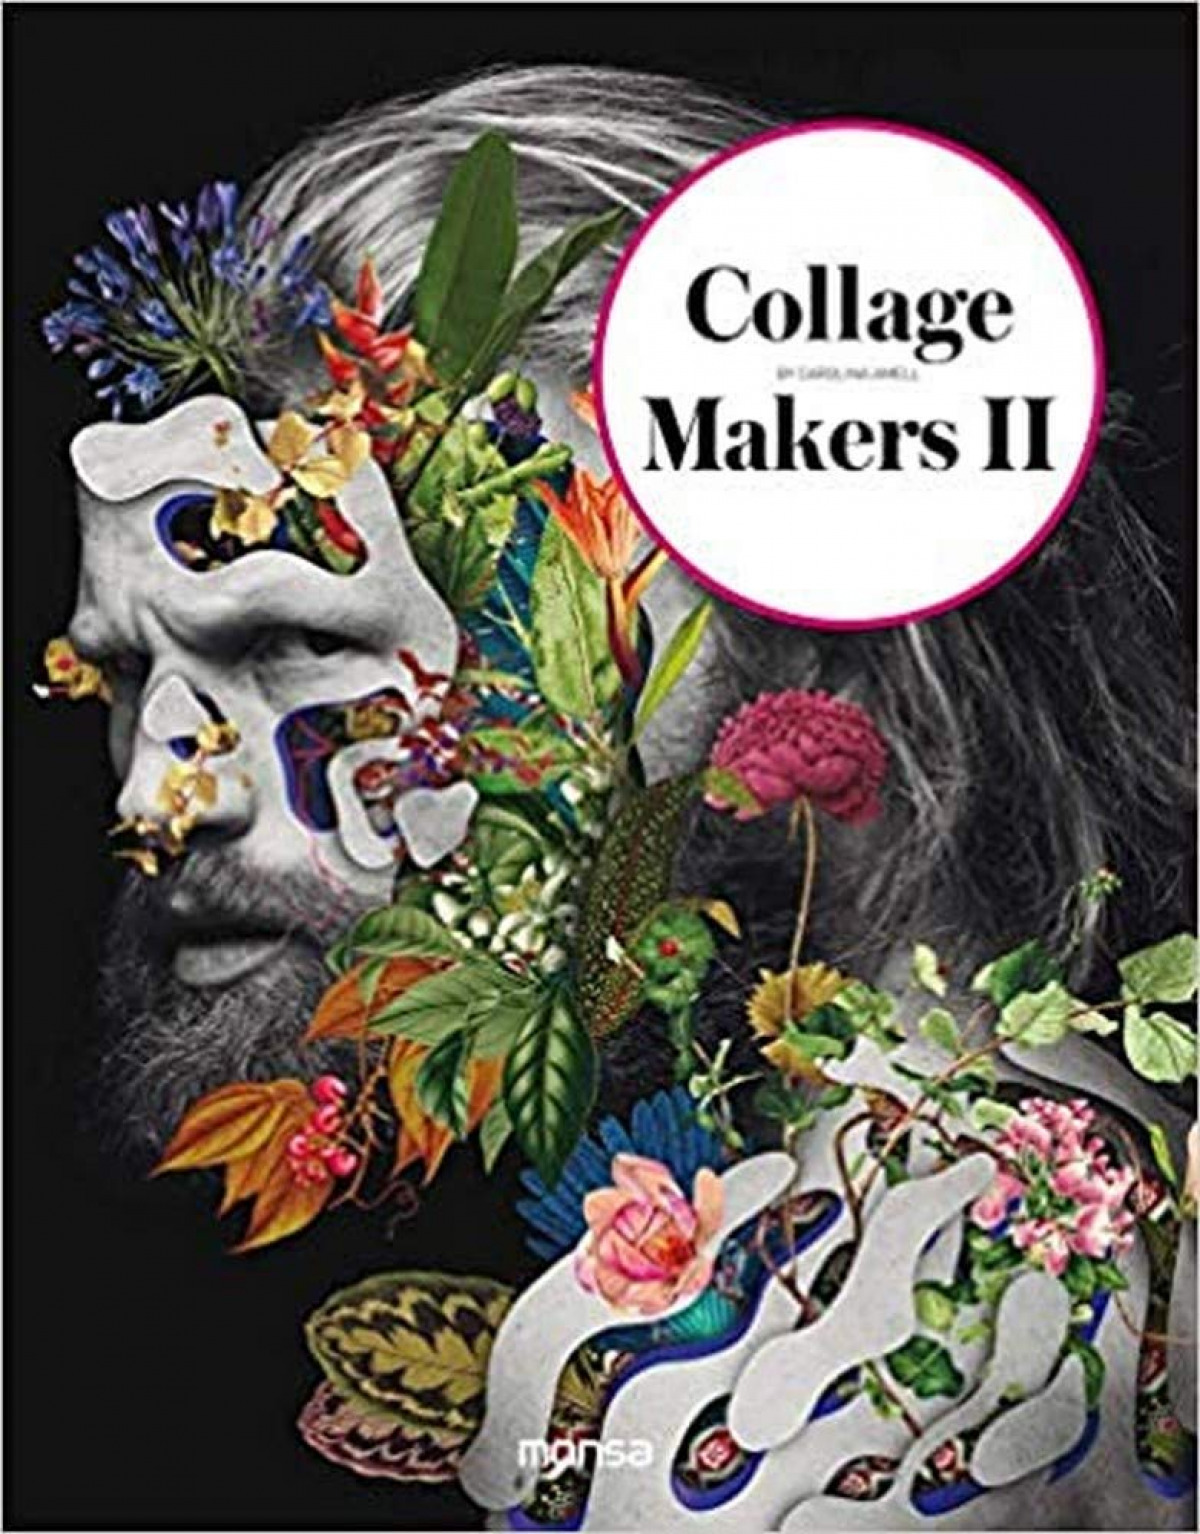 Collage makers II